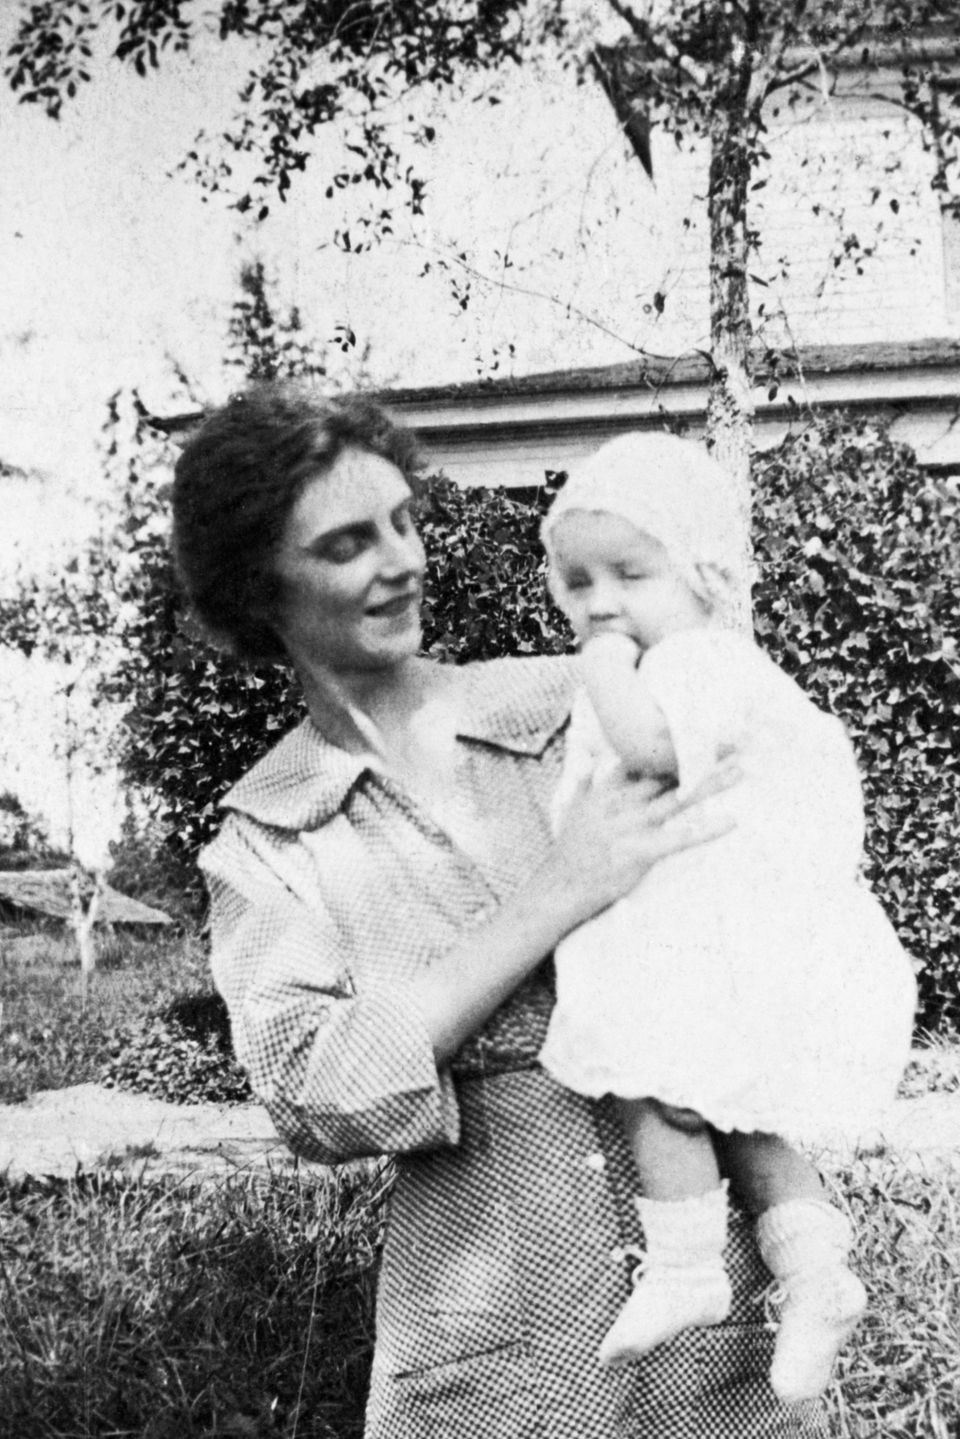 Future evangelist Billy Graham at six months old in this photograph with his mother, Mrs. Morrow Graham. He was born on